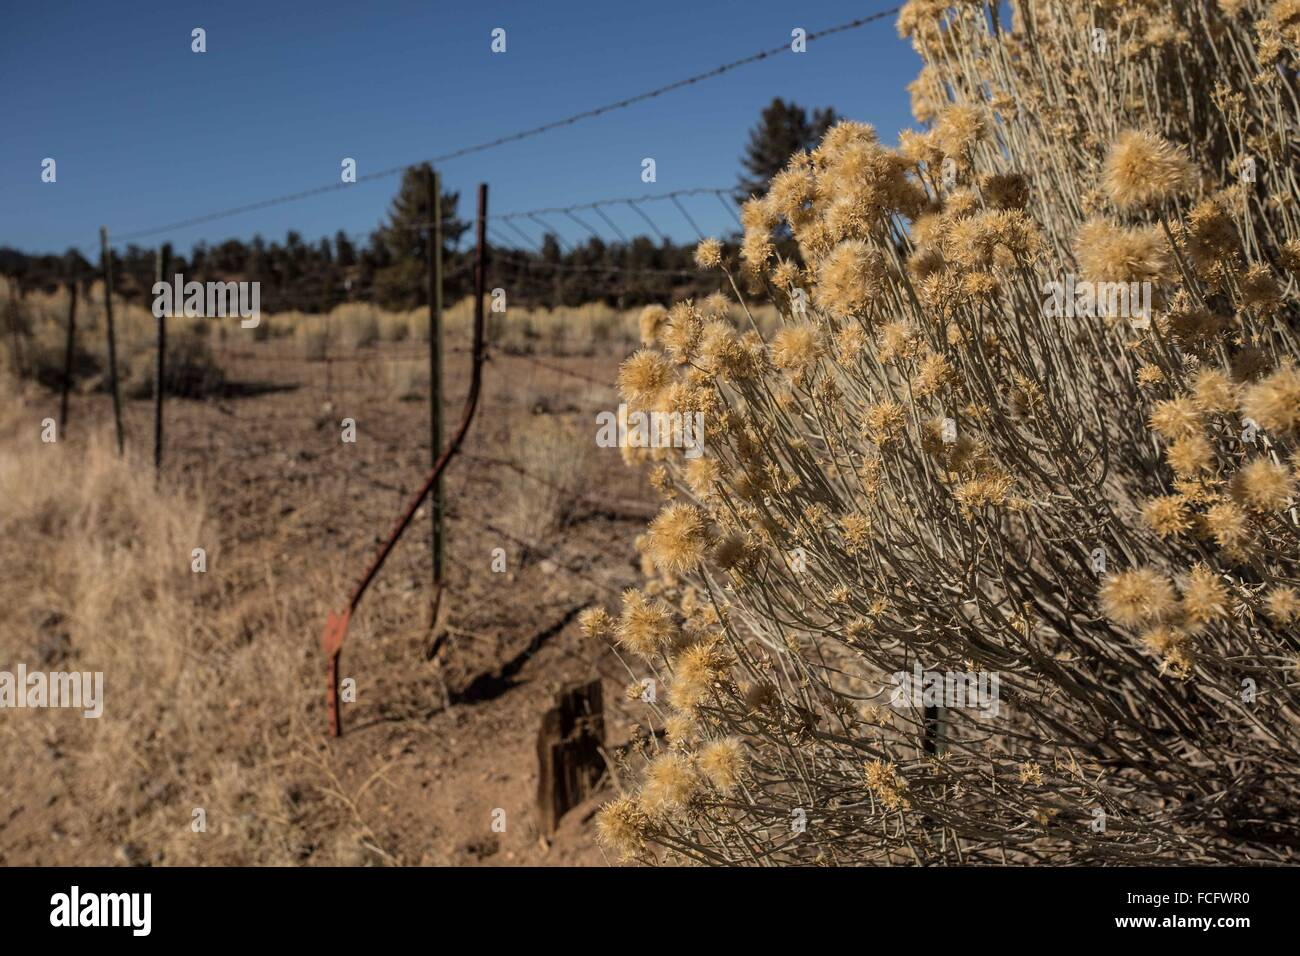 Golden yellow bur bush and wire fence in California. - Stock Image